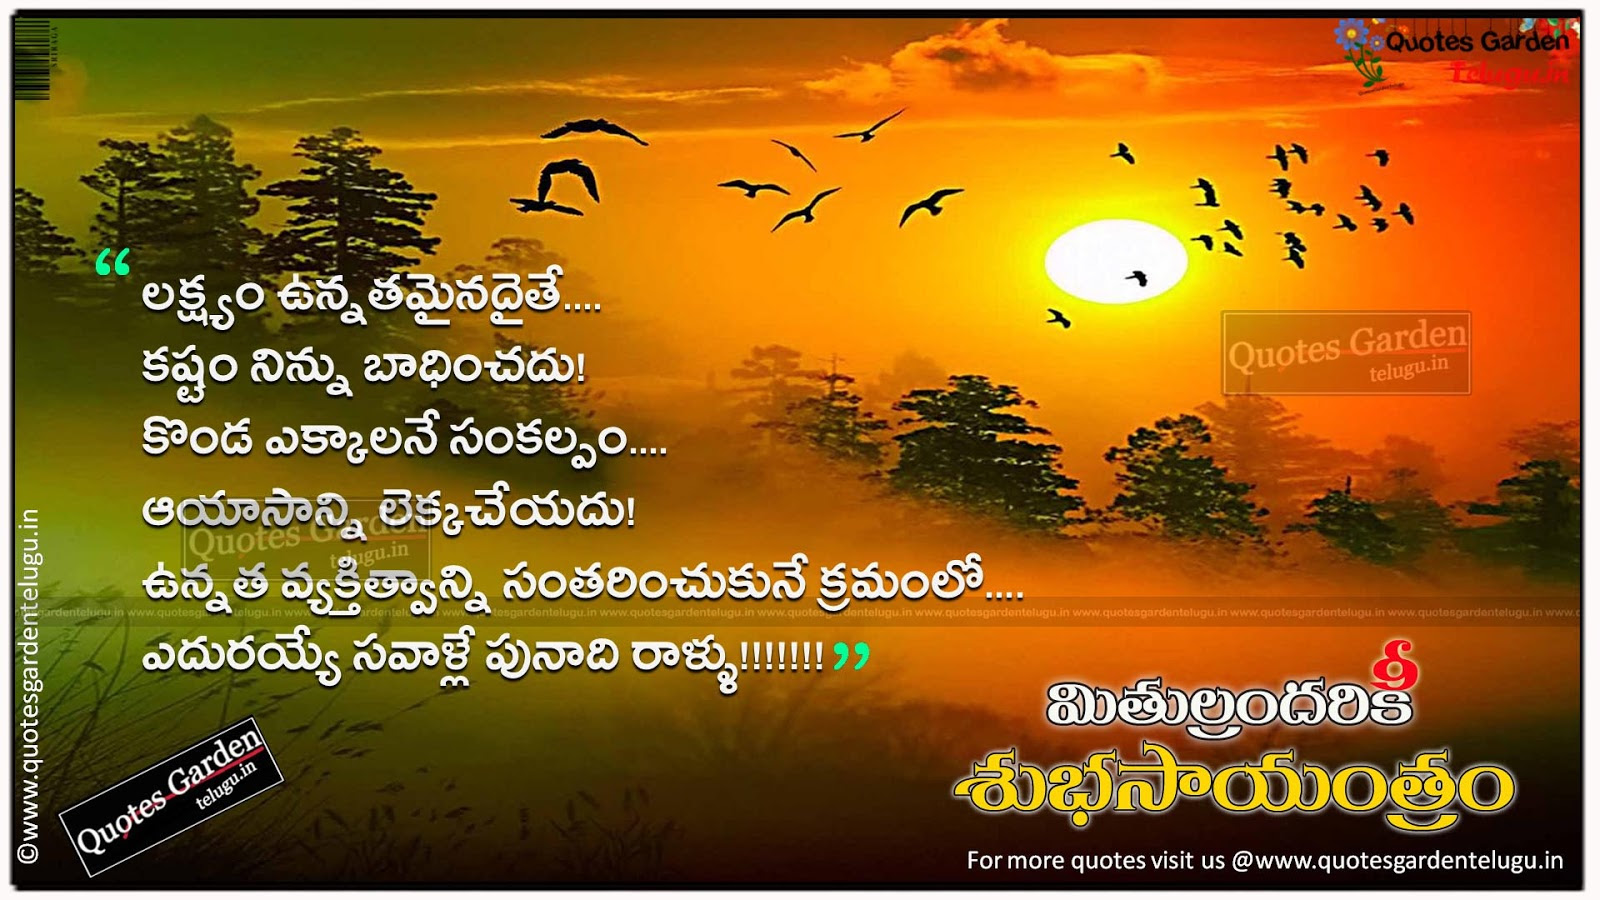 Hd Wallpapers Telugu Quotes Telugu Good Evening Quotes With Hd